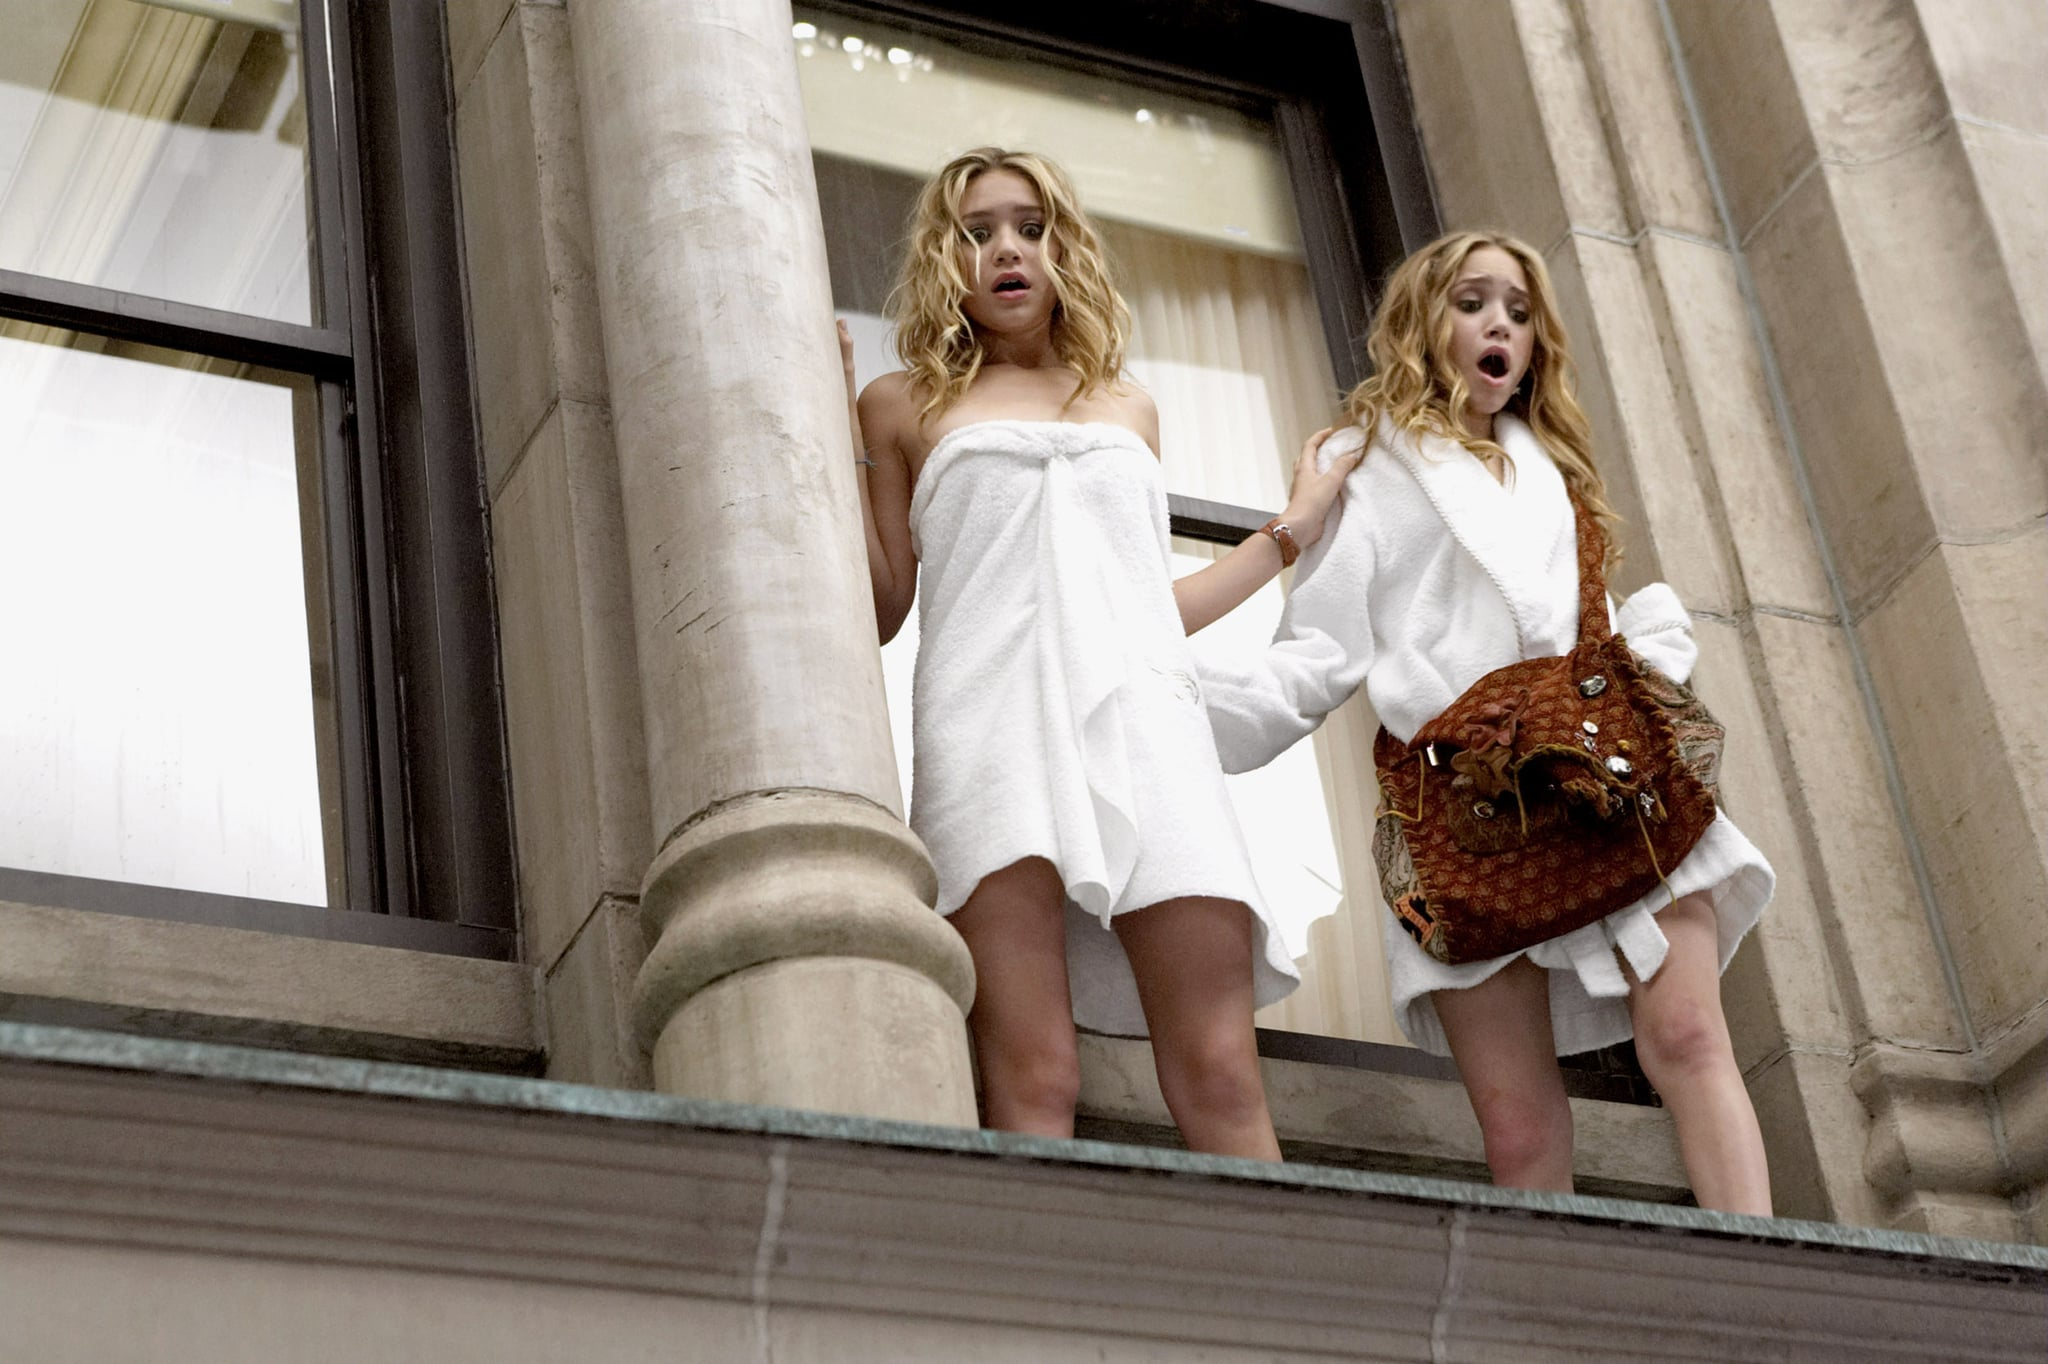 NEW YORK MINUTE, Ashley Olsen, Mary-Kate Olsen, 2004, (c) Warner Brothers/courtesy Everett Collection